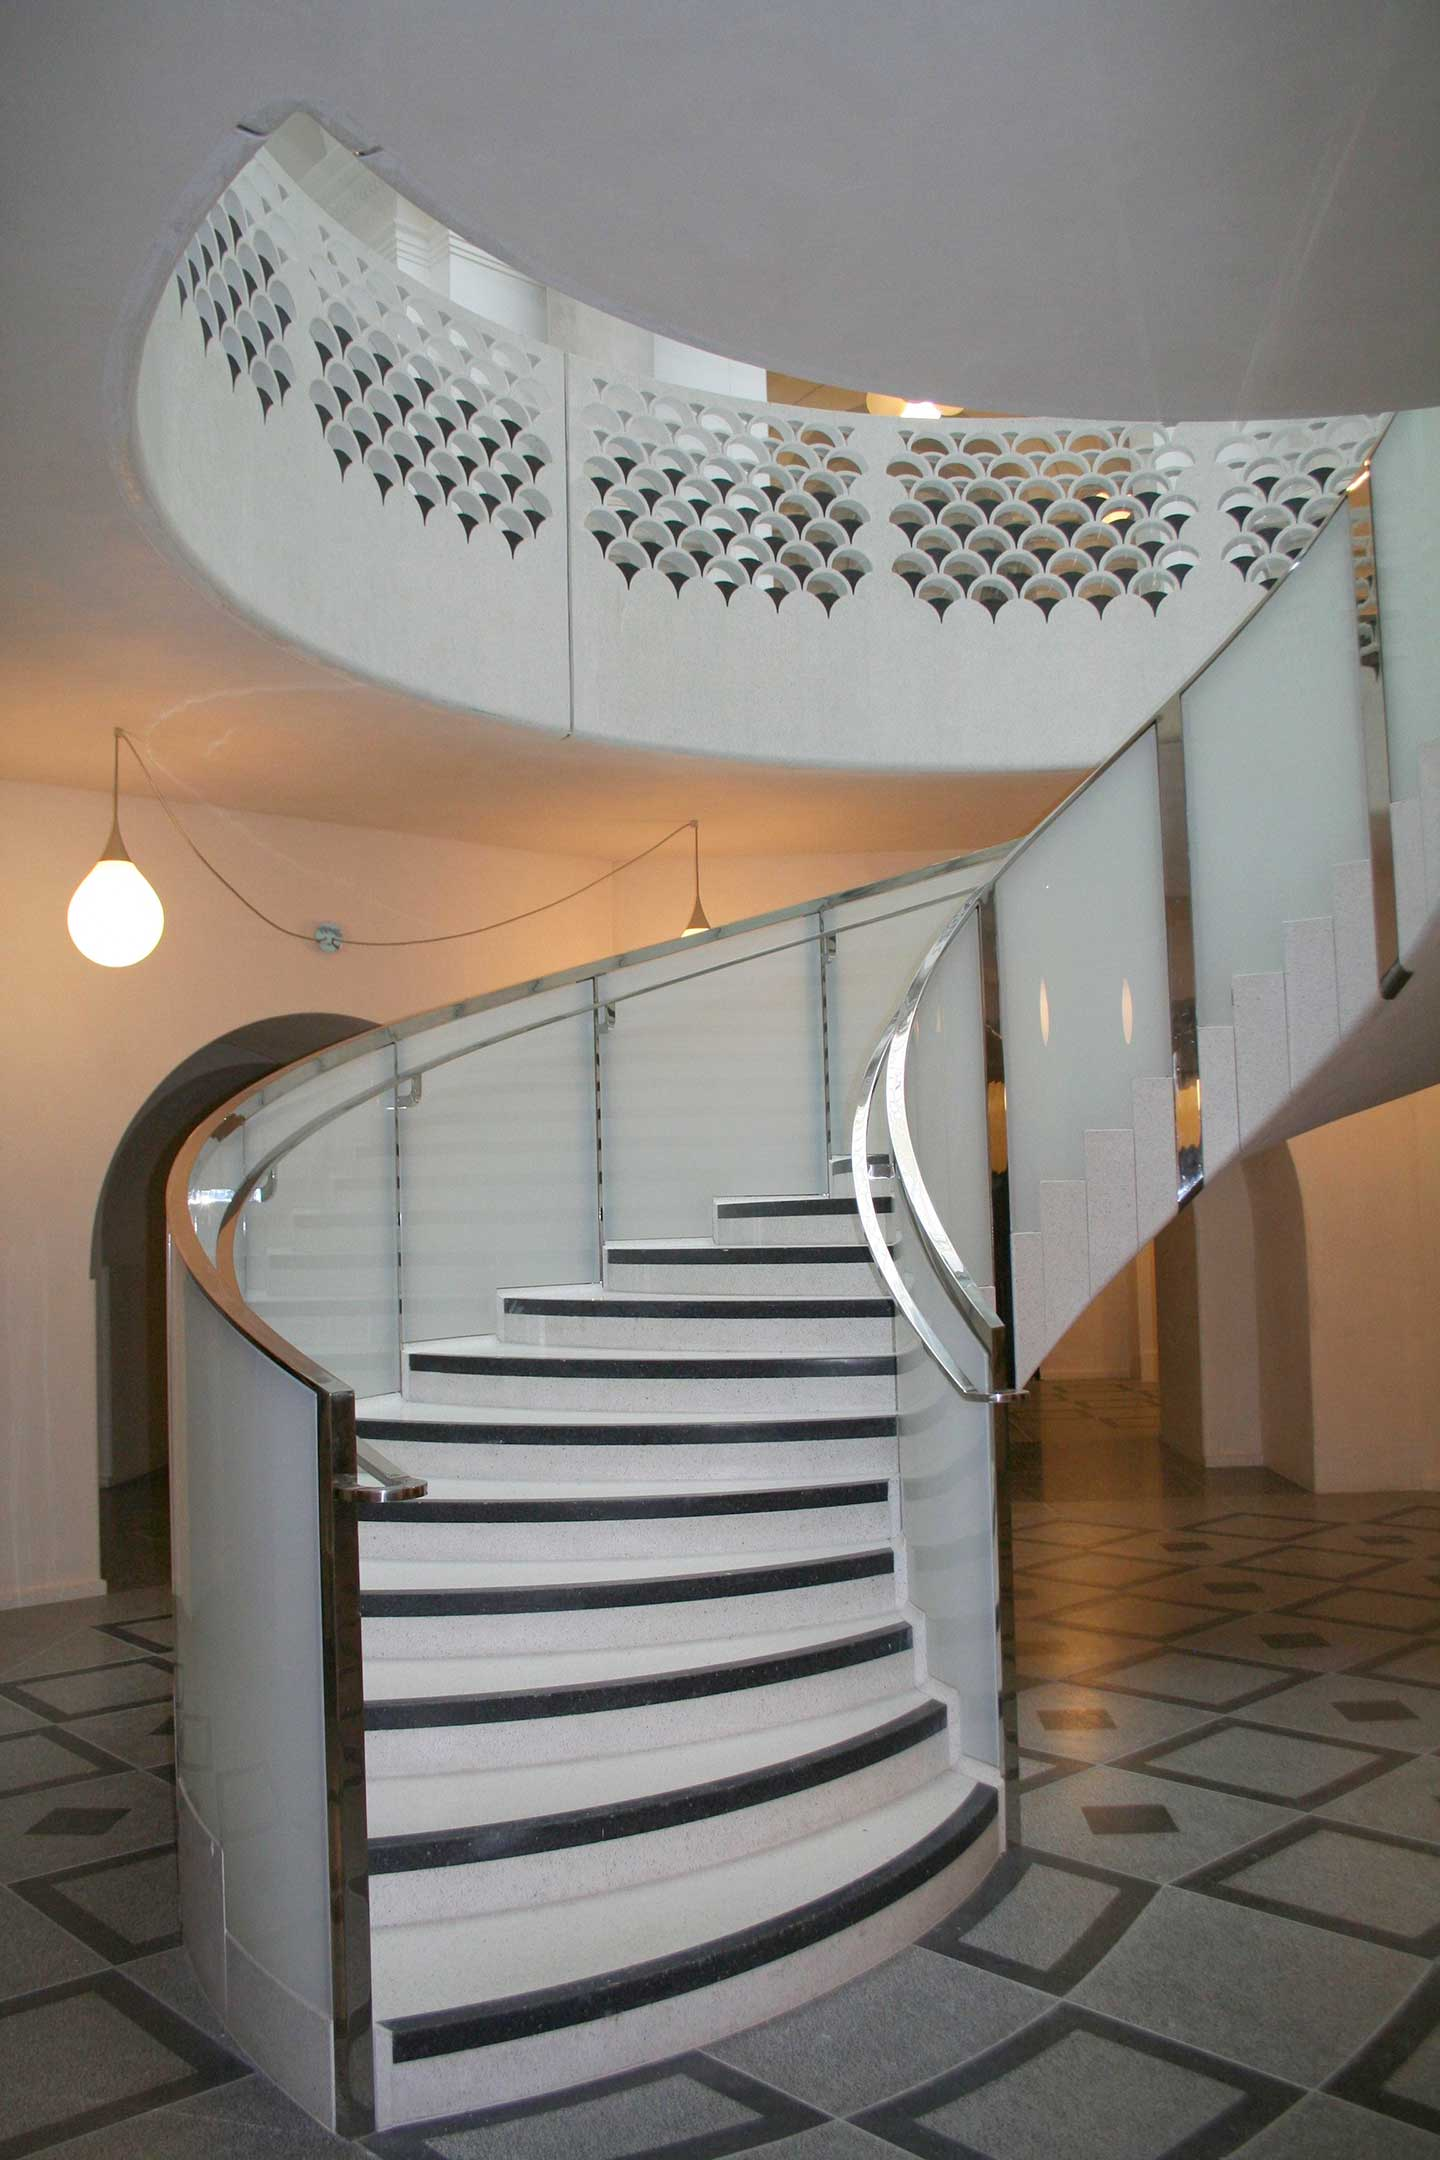 Bespoke White Glass Staircase with Custom Glass Balustrade Panels